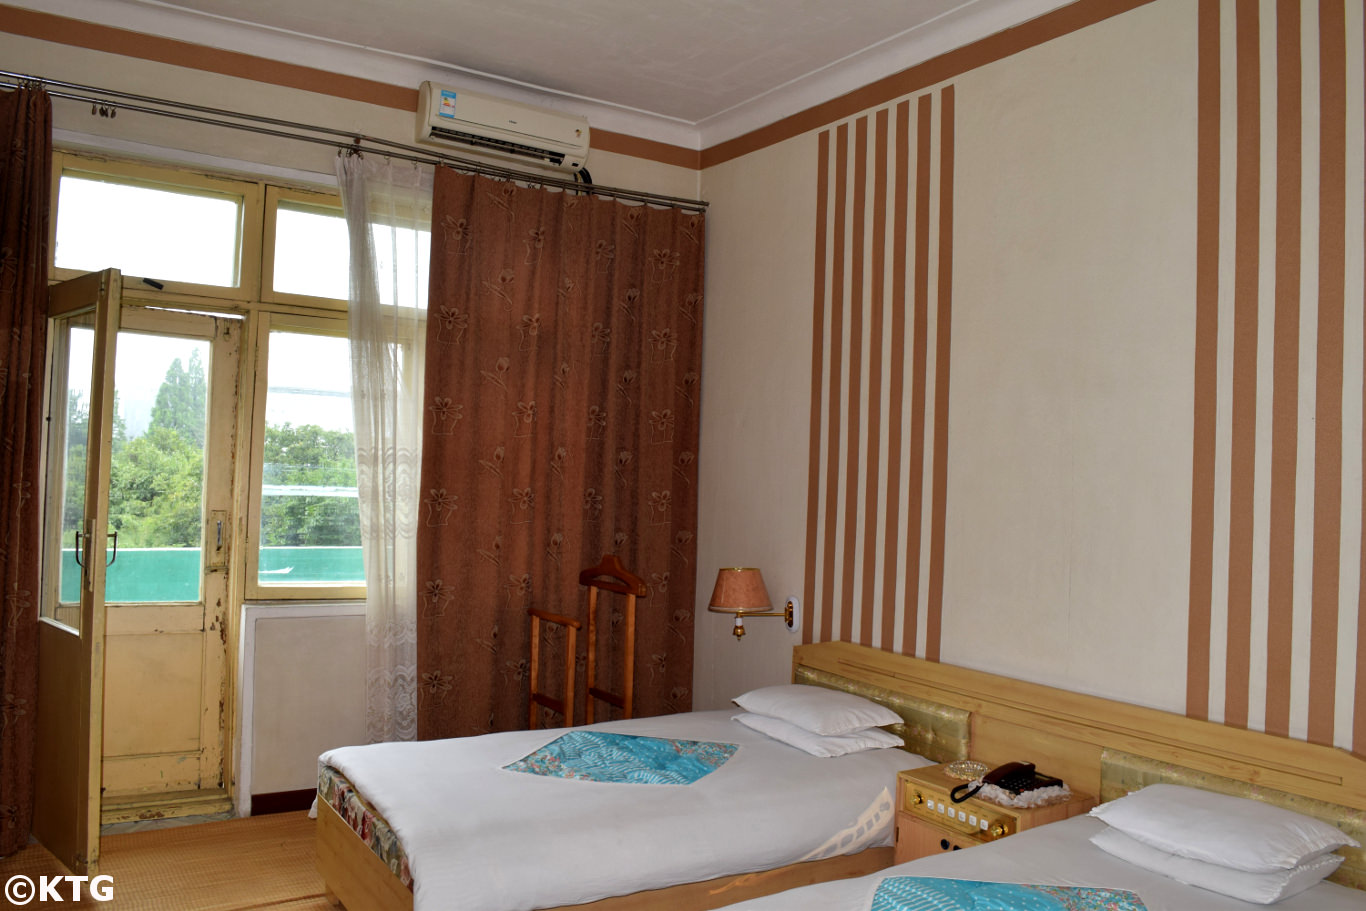 Room at the Songdowon Hotel in Wonsan city, Kangwon province, North Korea (DPRK). Trip arranged by KTG Tours